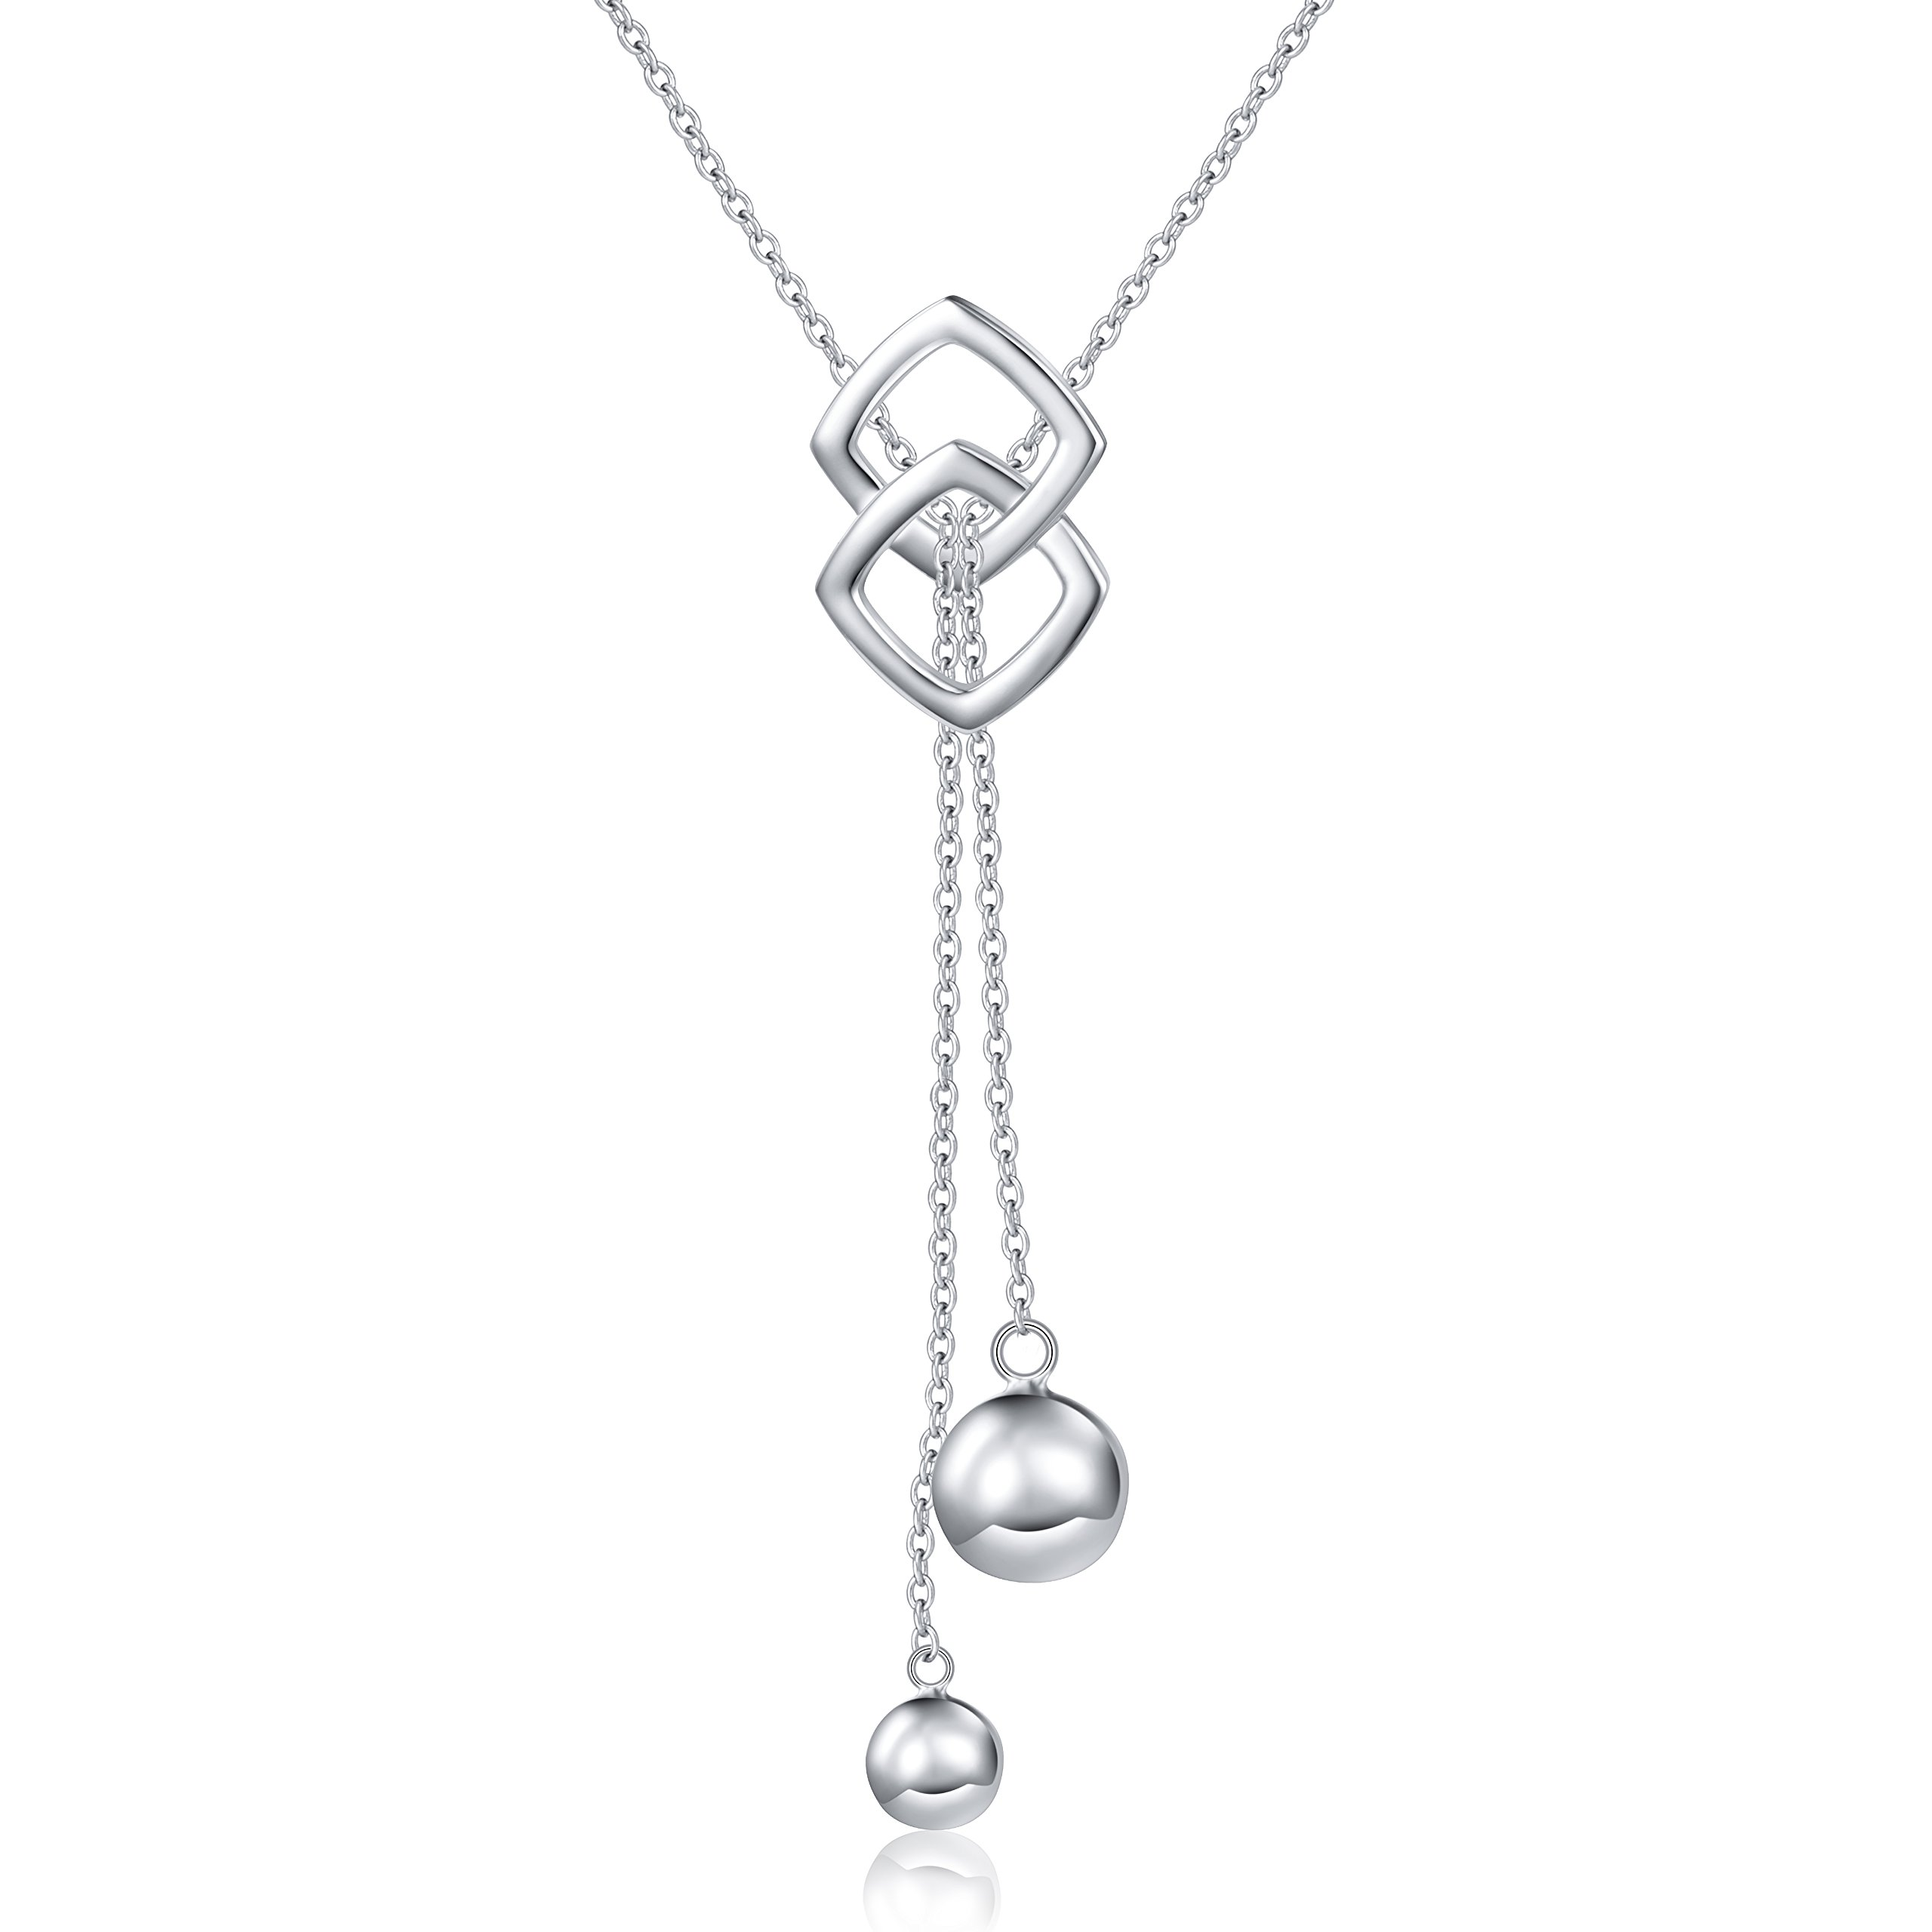 SILVER MOUNTAIN Long Necklace S925 Sterling Silver Tassel Round Ball Necklace for Women, 30'' (Chain adjustable)